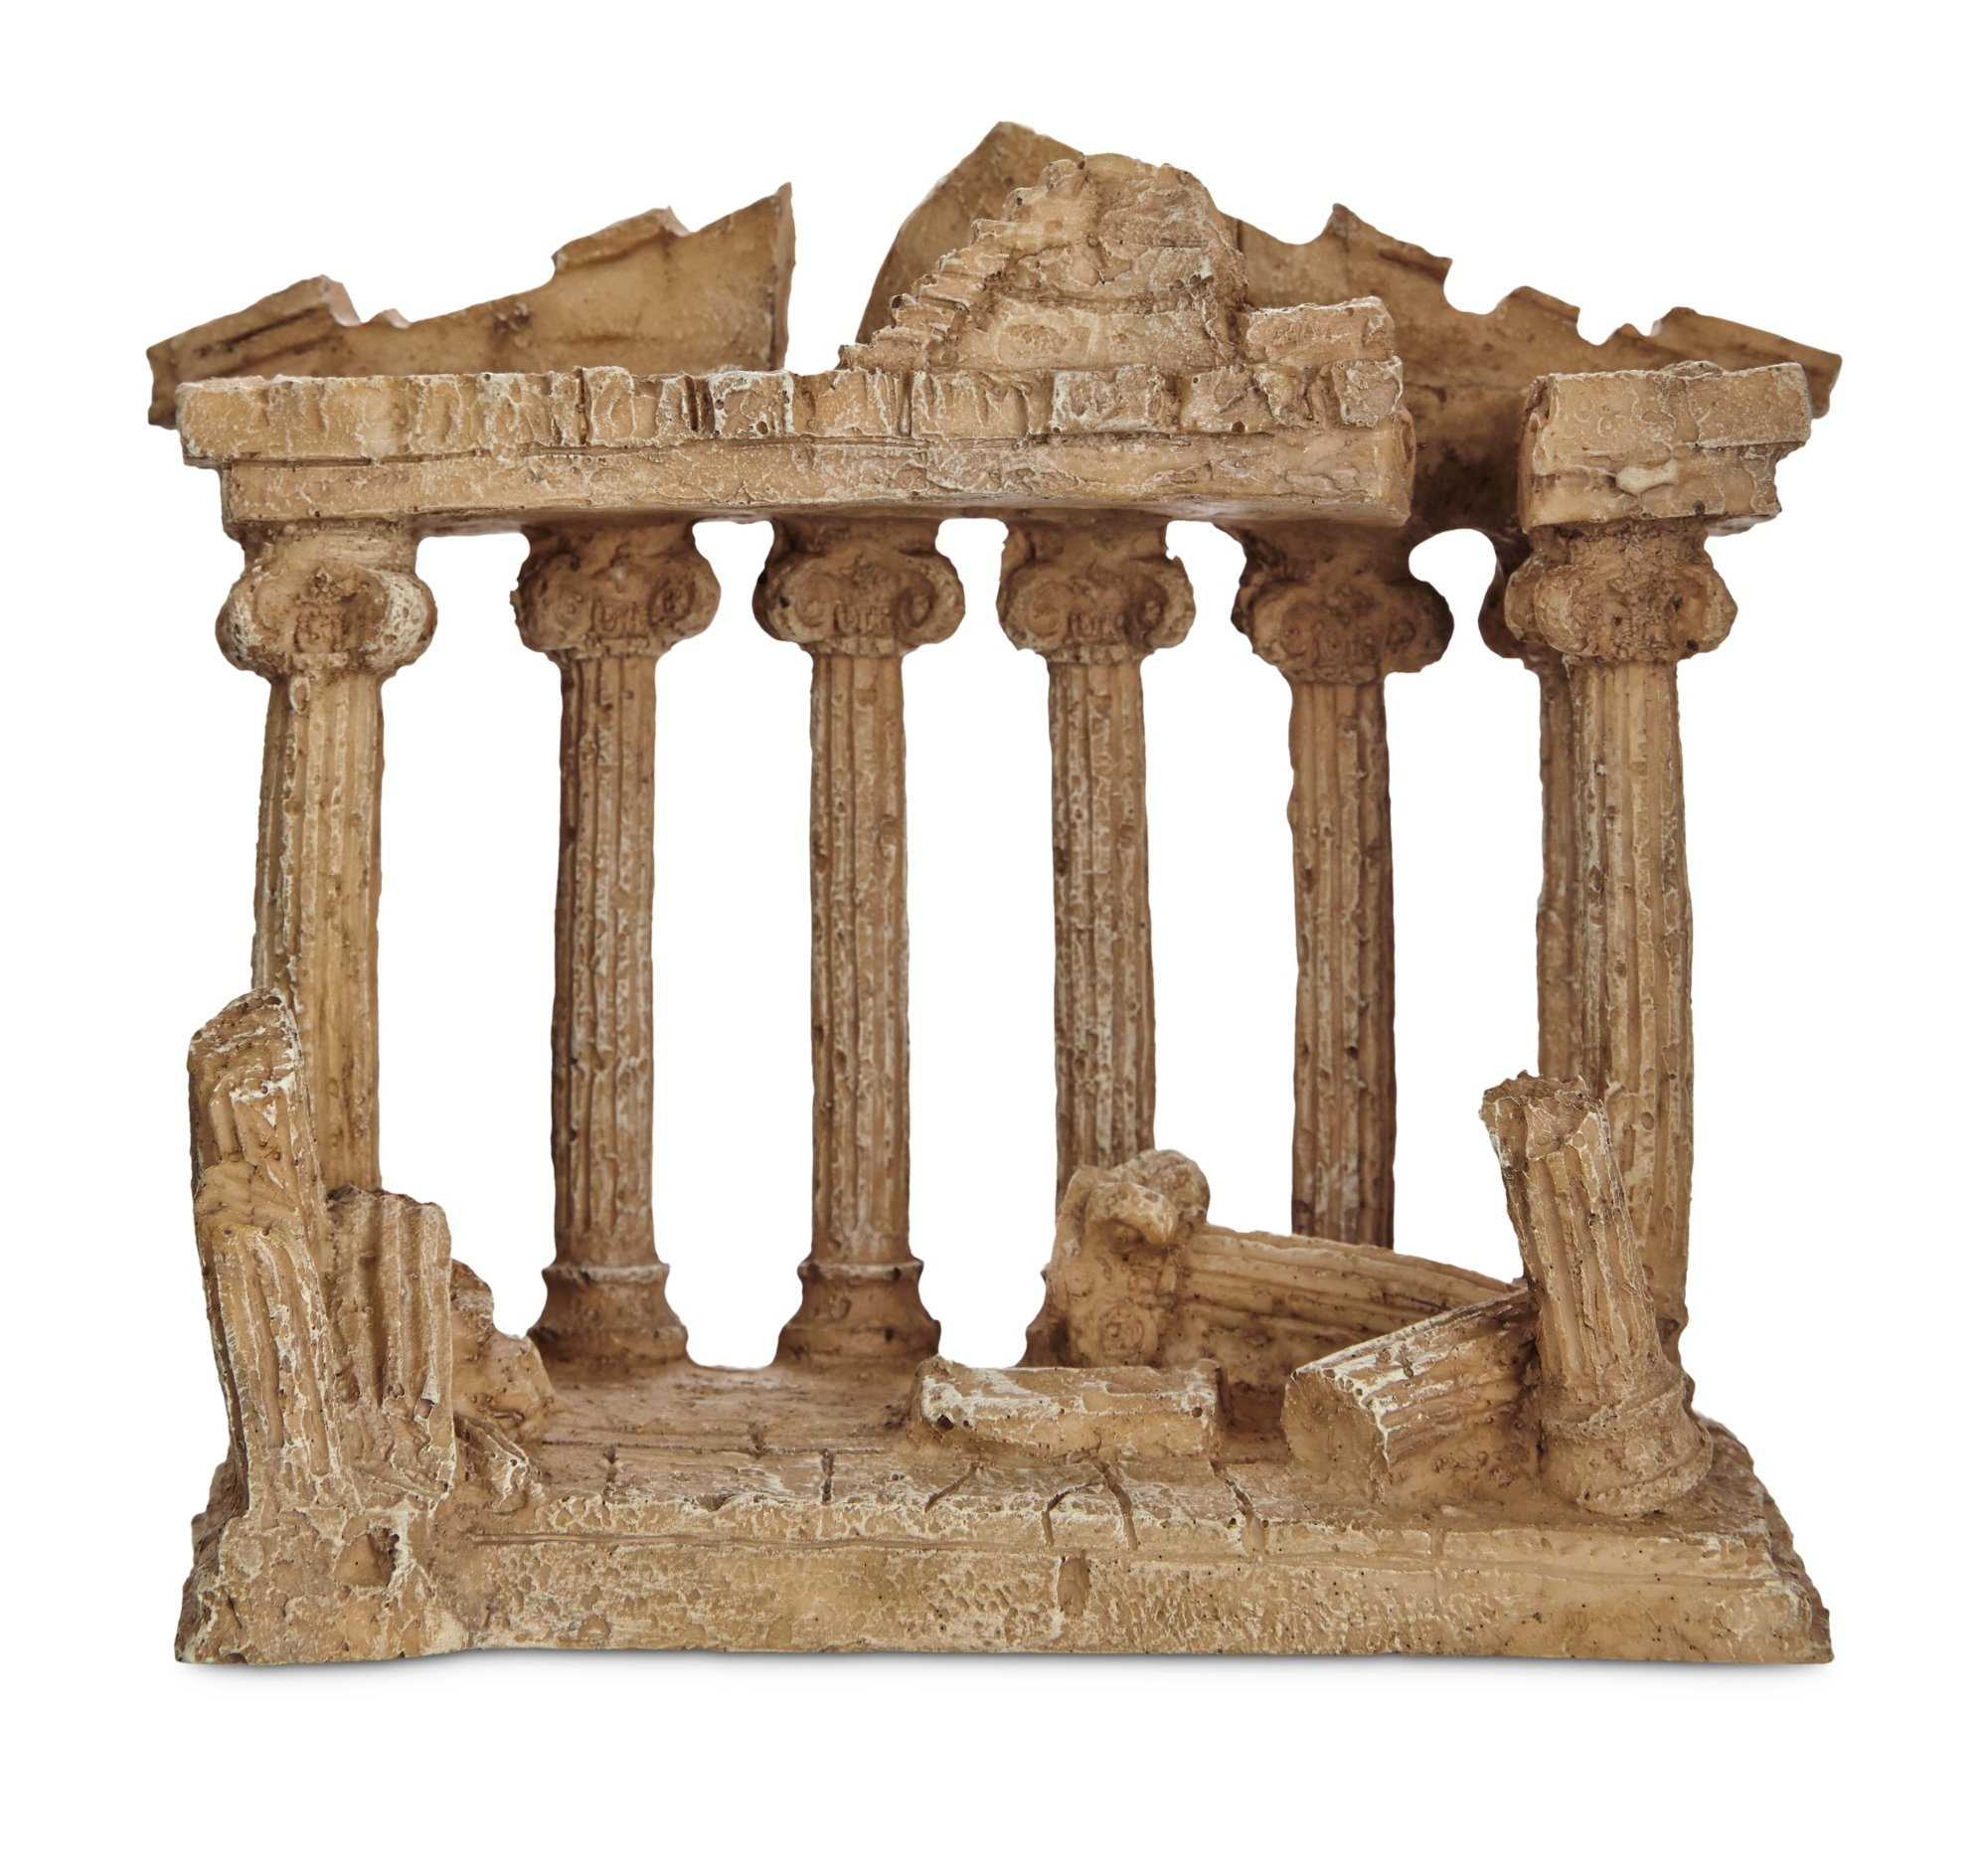 Imagitarium resin greek temple aquatic decor petco for Aquatic decoration